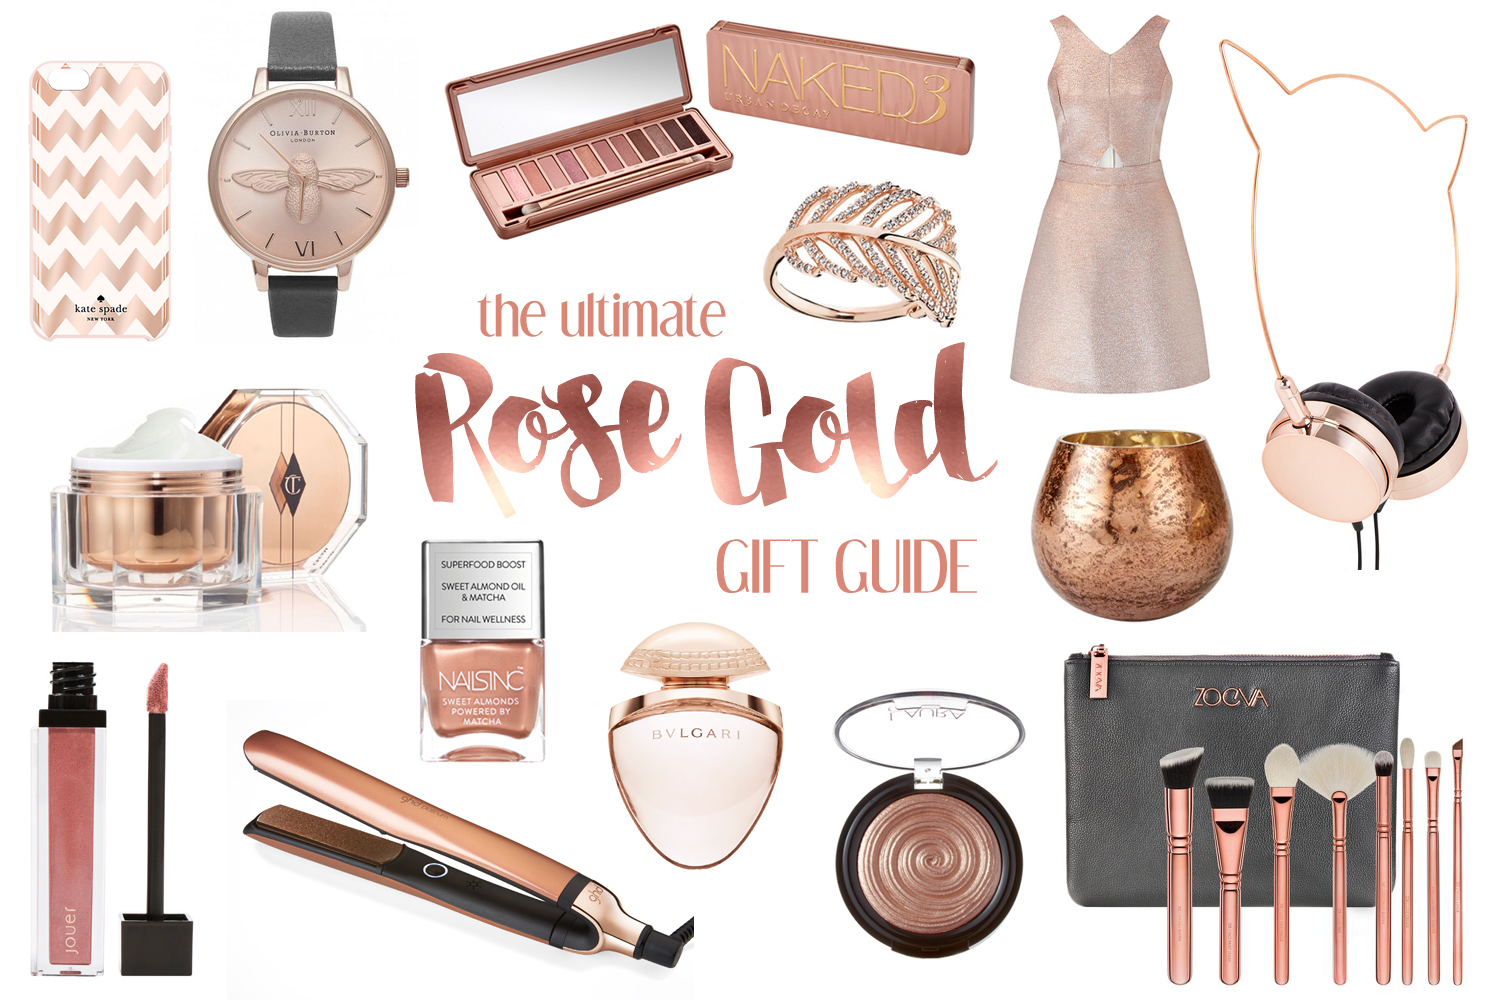 The Ultimate Rose Gold Gift Guide, Katie Kirk Loves, Rose Gold, Gift Guide, Gift Ideas, Christmas Gifts, Rose Gold Gifts, Rose Gold Beauty, Rose Gold Accessories, Beauty Gifts